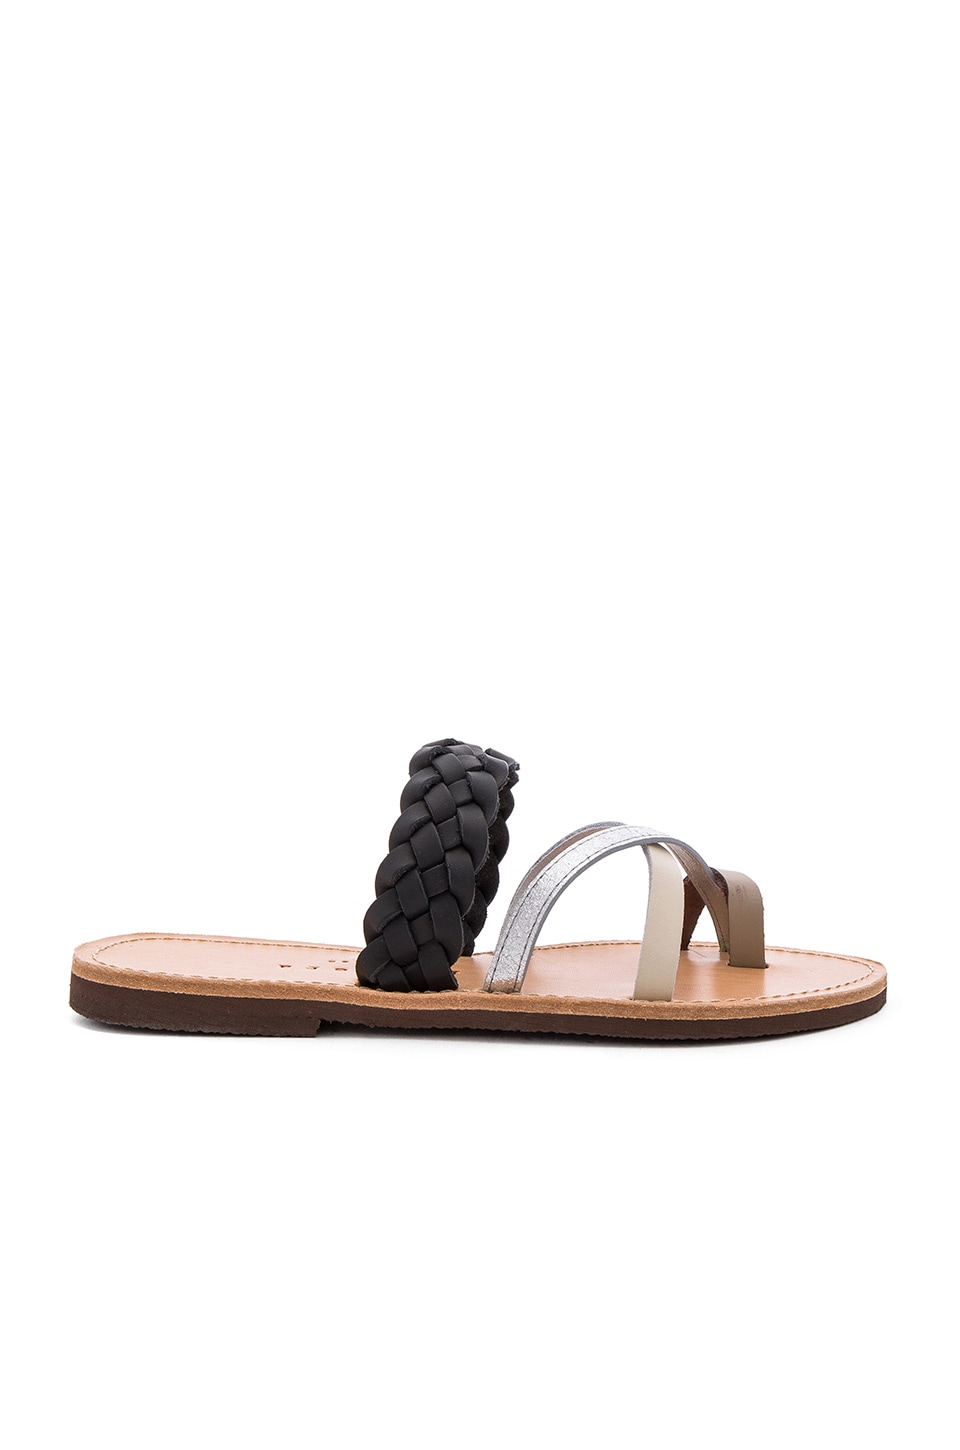 isapera Ftelia Sandal in Taupe